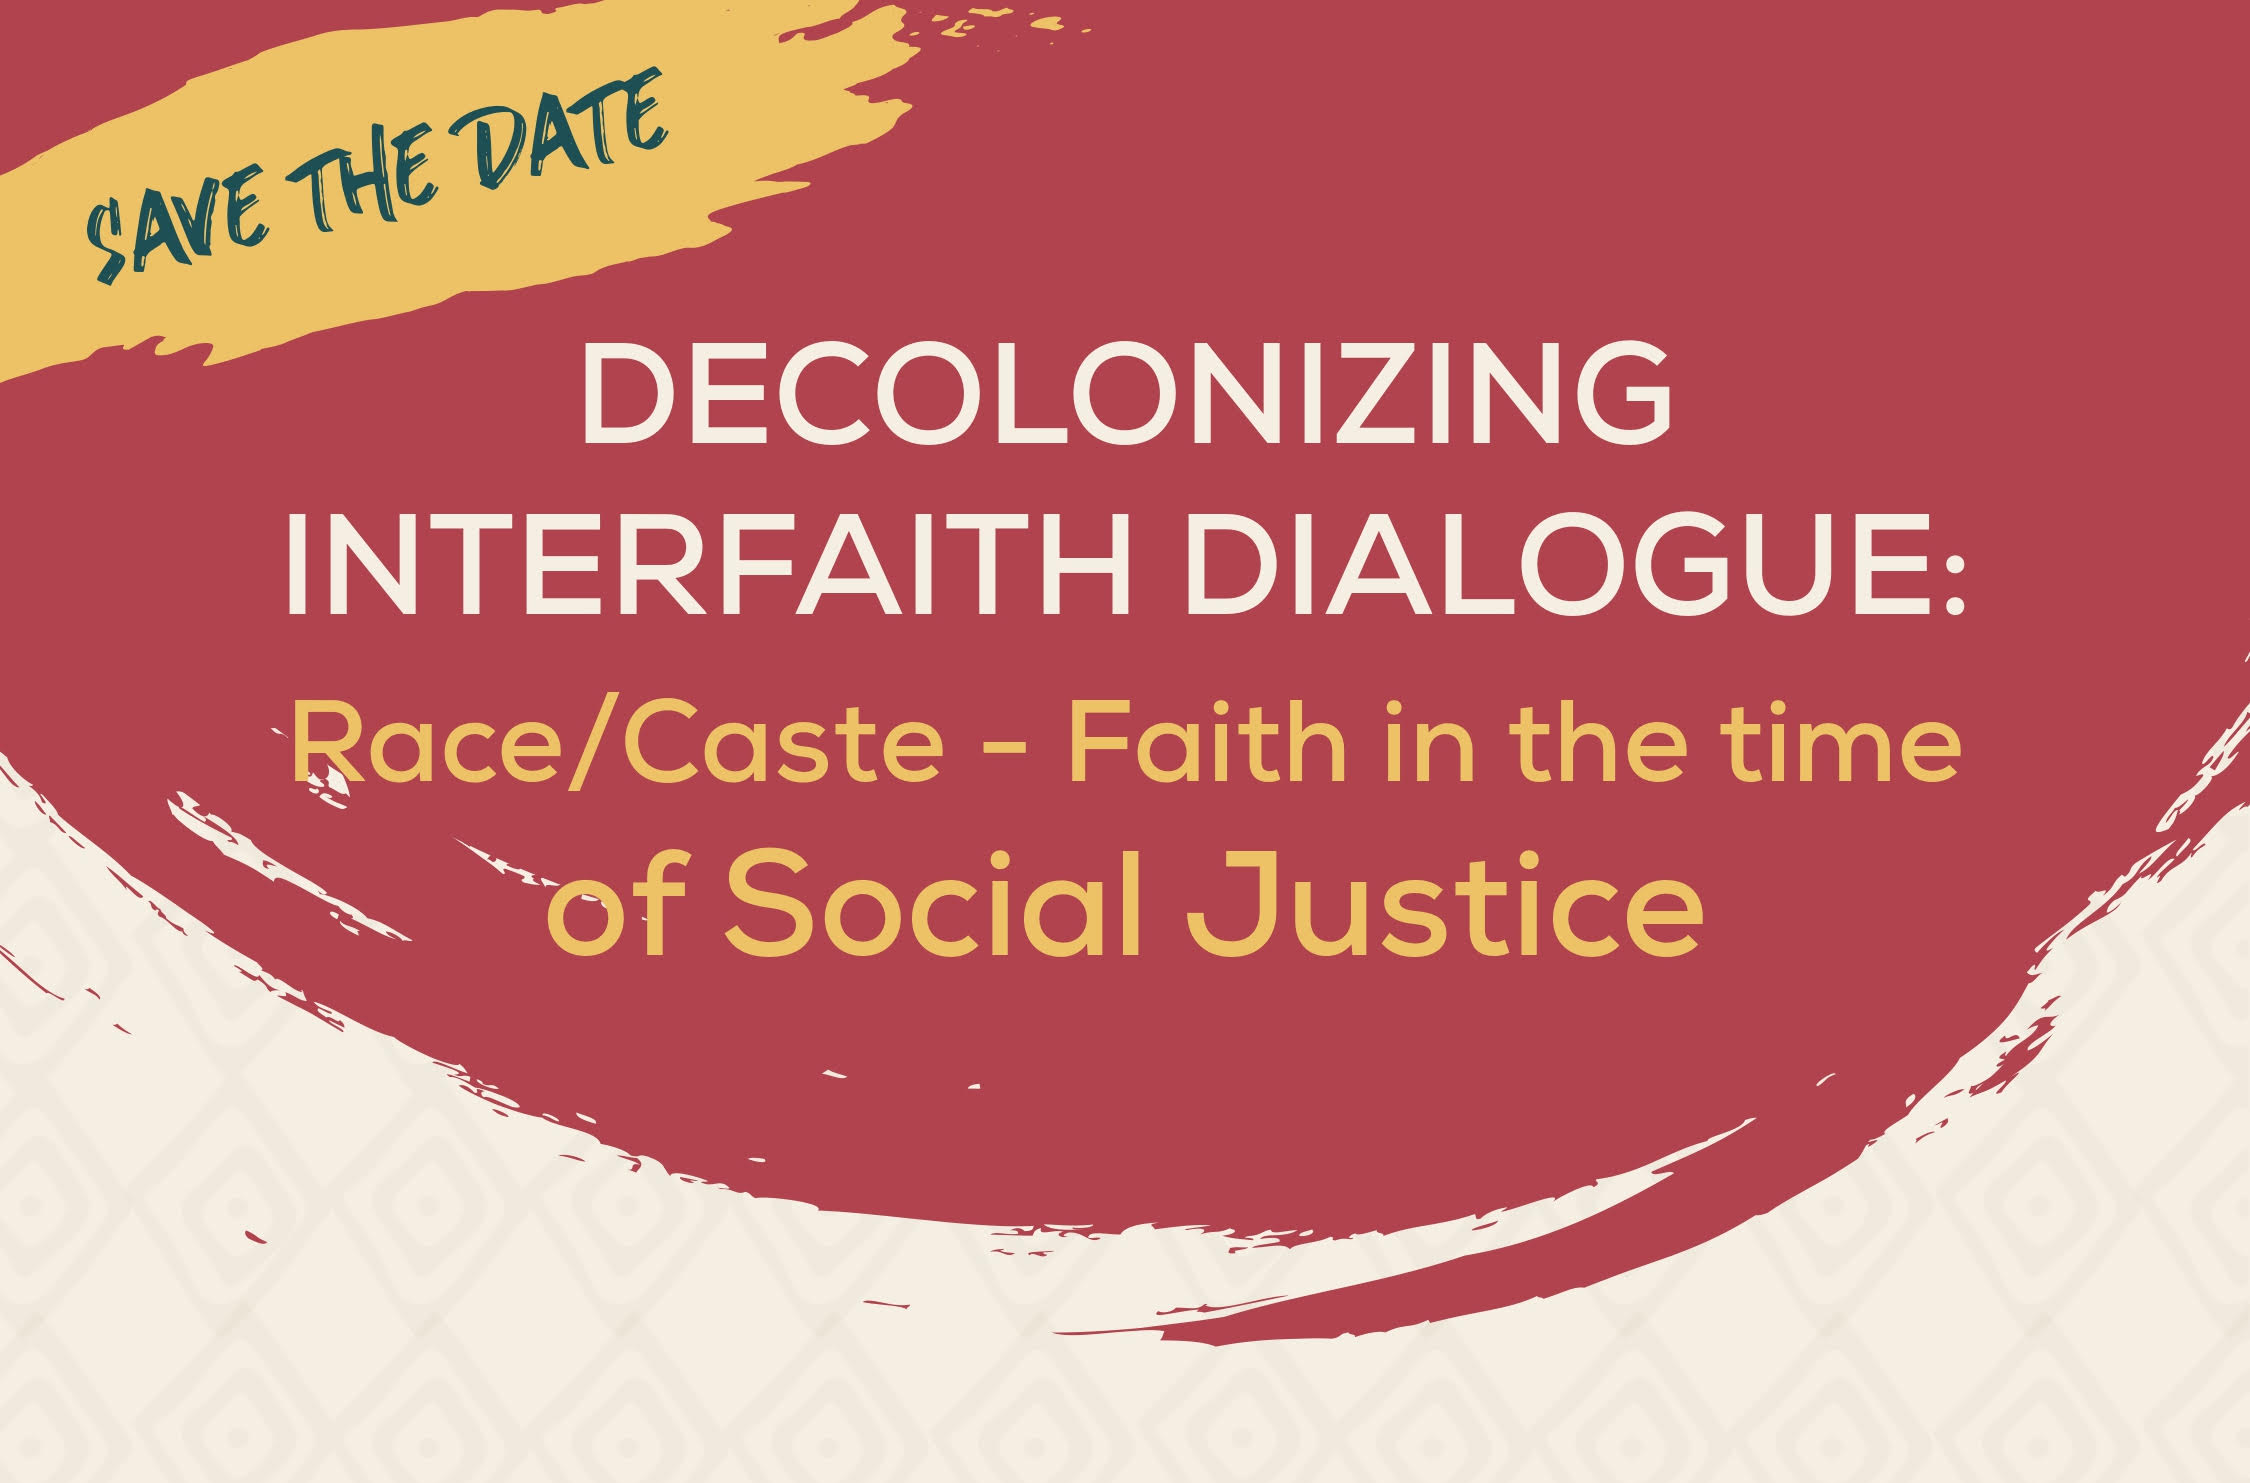 Decolonizing Interfaith Dialogue: Race/Caste - Faith in the time of Social Justice